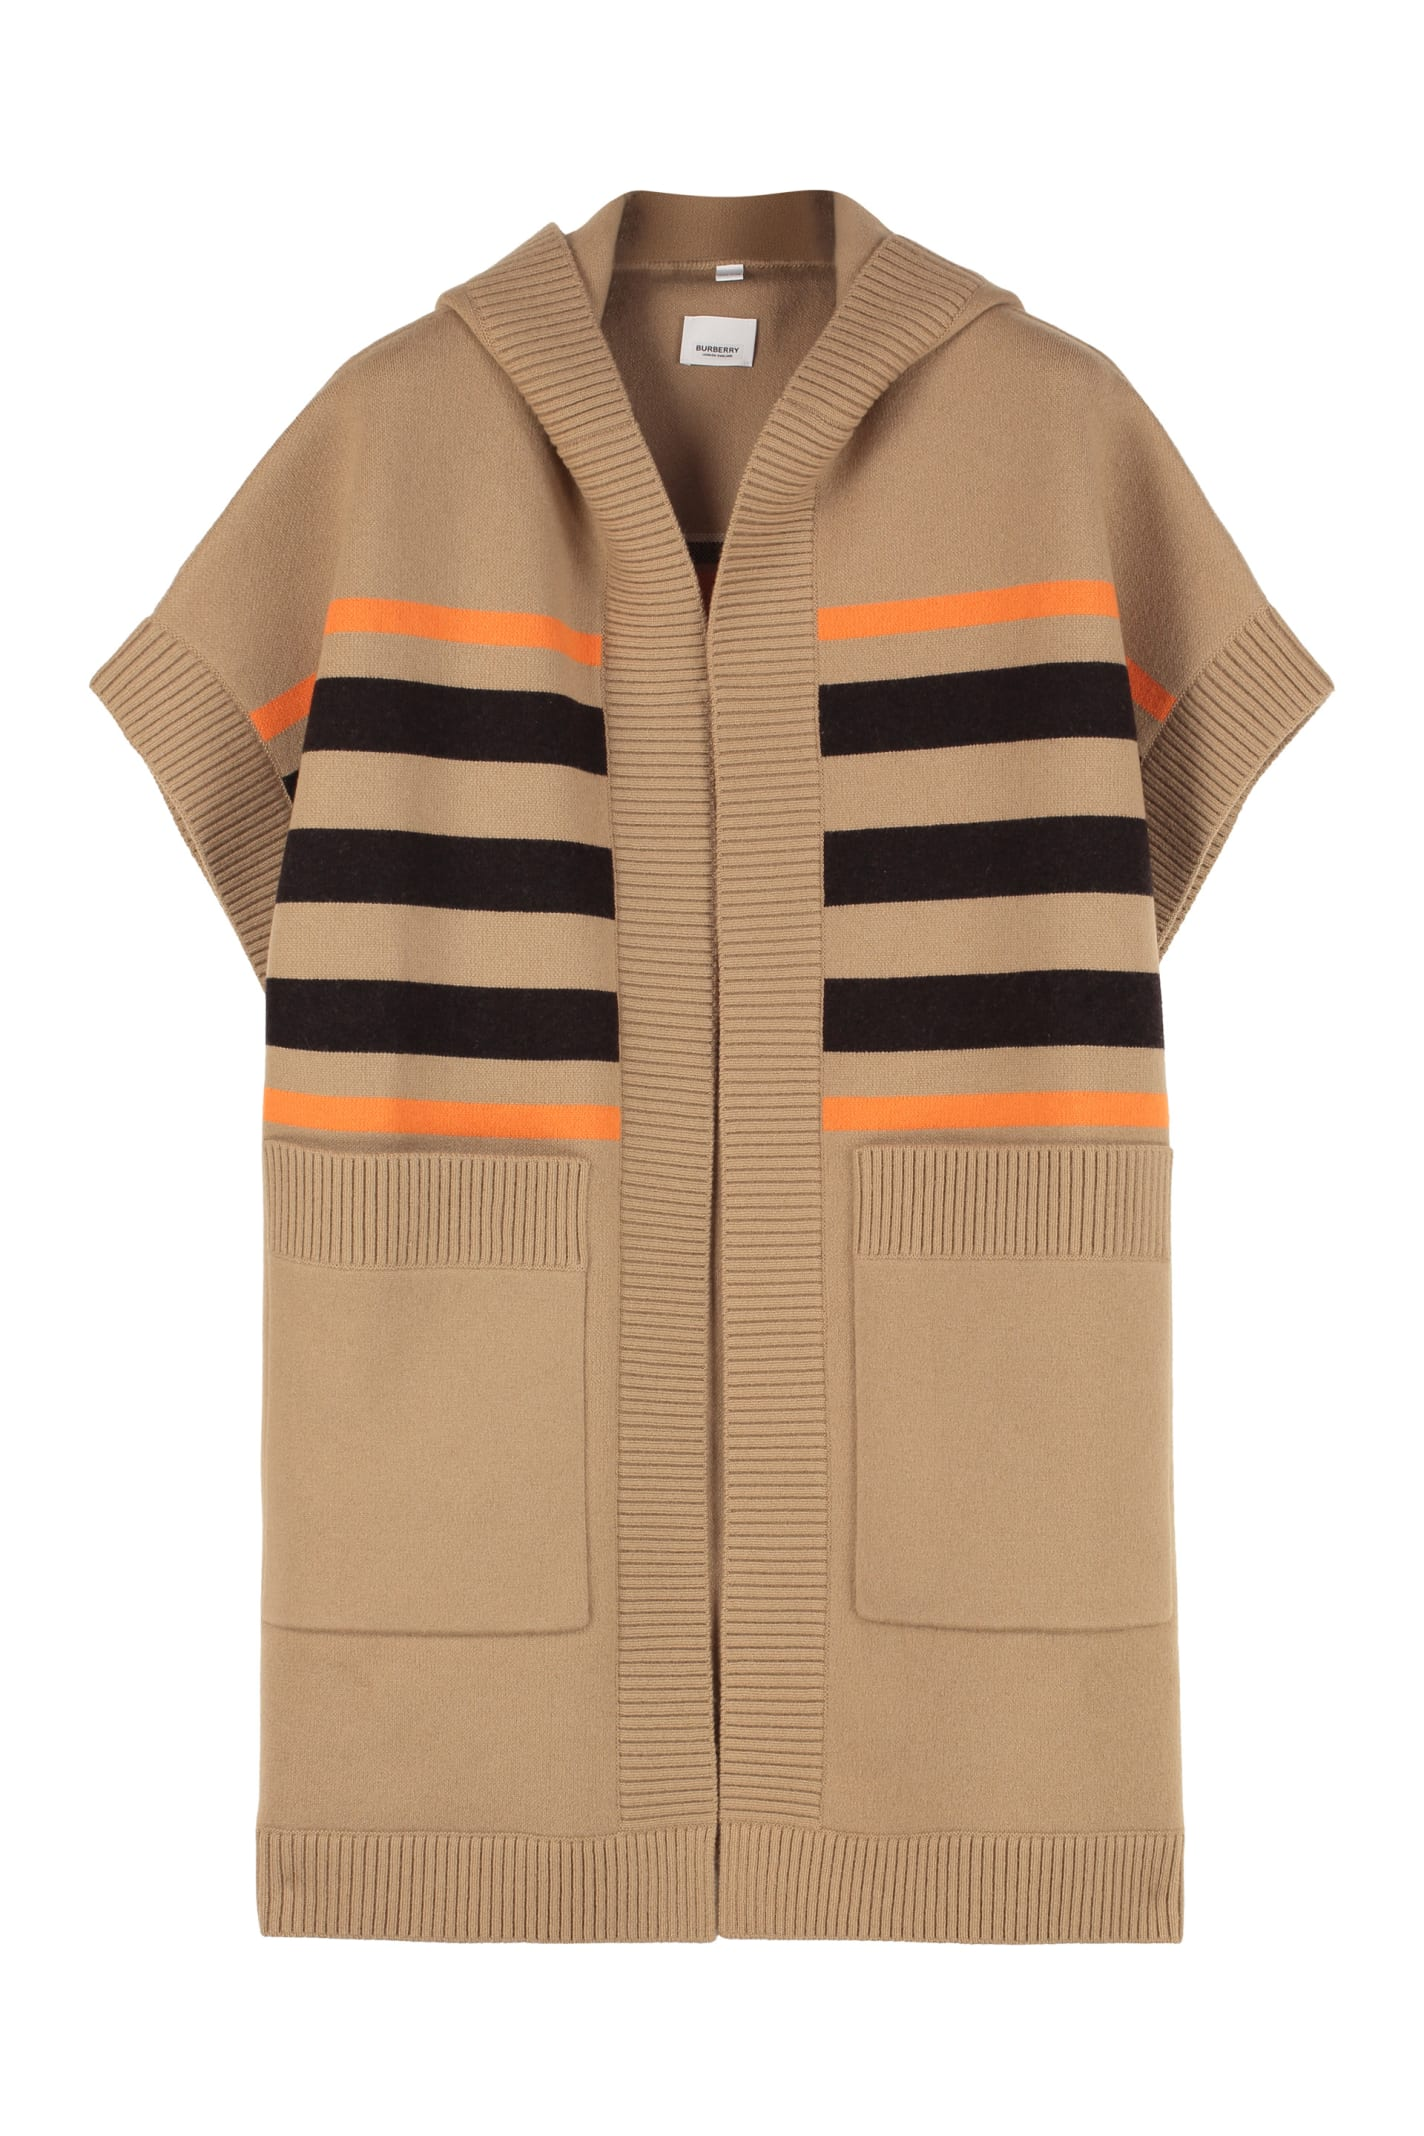 Burberry Knitted Cashmere And Wool Cape Coat